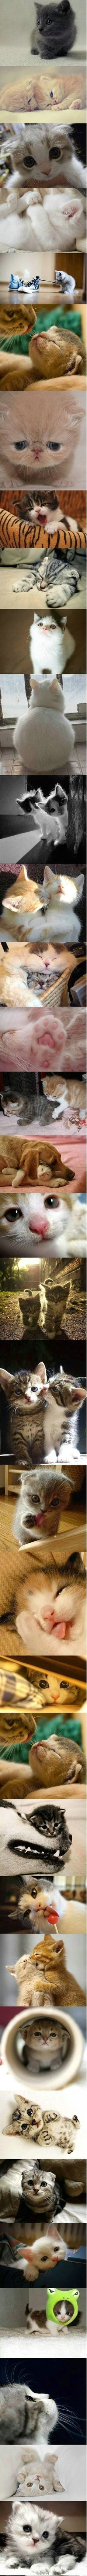 that's it pintrest. i am going to be a crazy cat lady when i grow up. thanks.